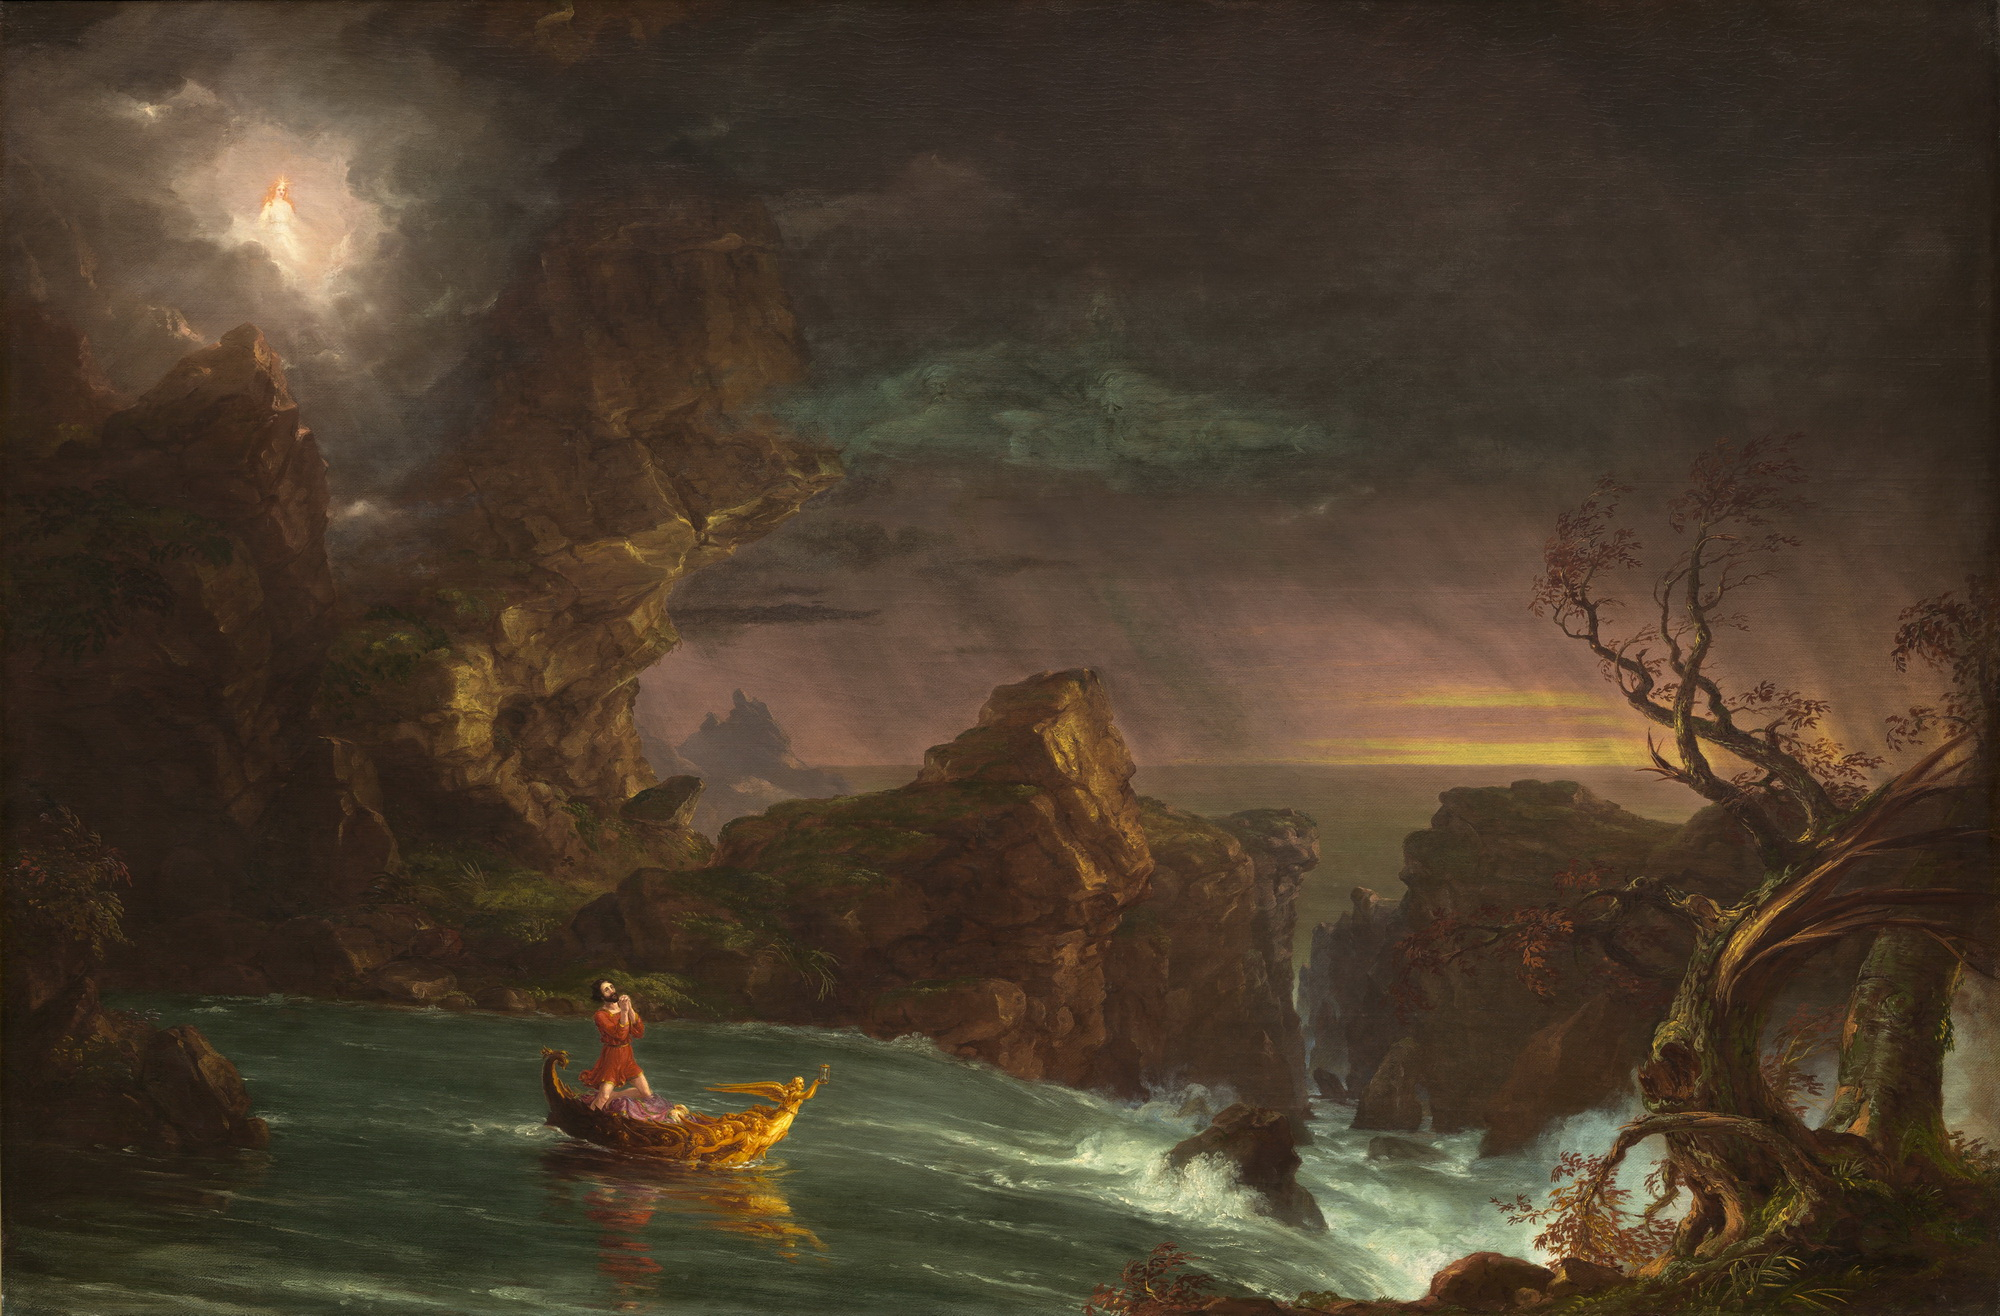 Thomas Cole The Voyage of Life 1842-2000